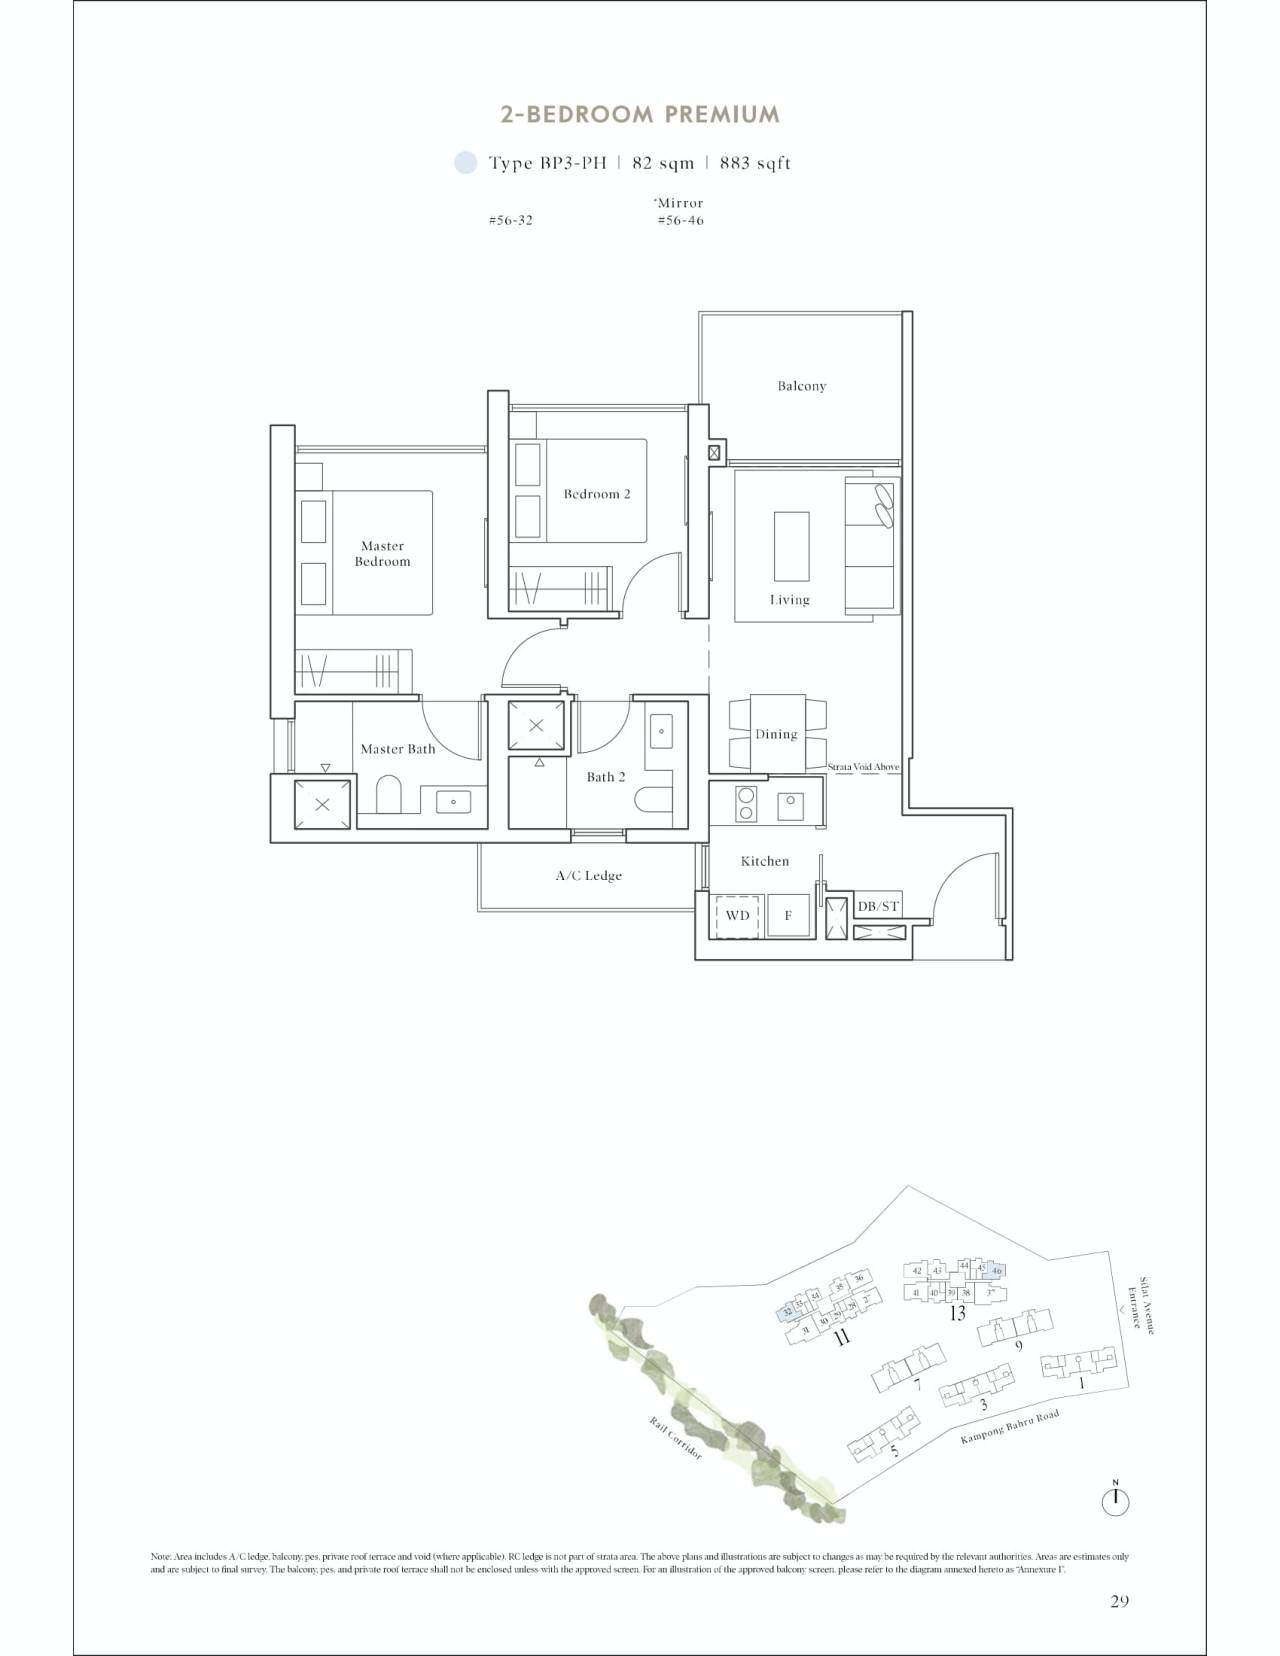 Avenue South Residence Typical 2 Bedroom Premium